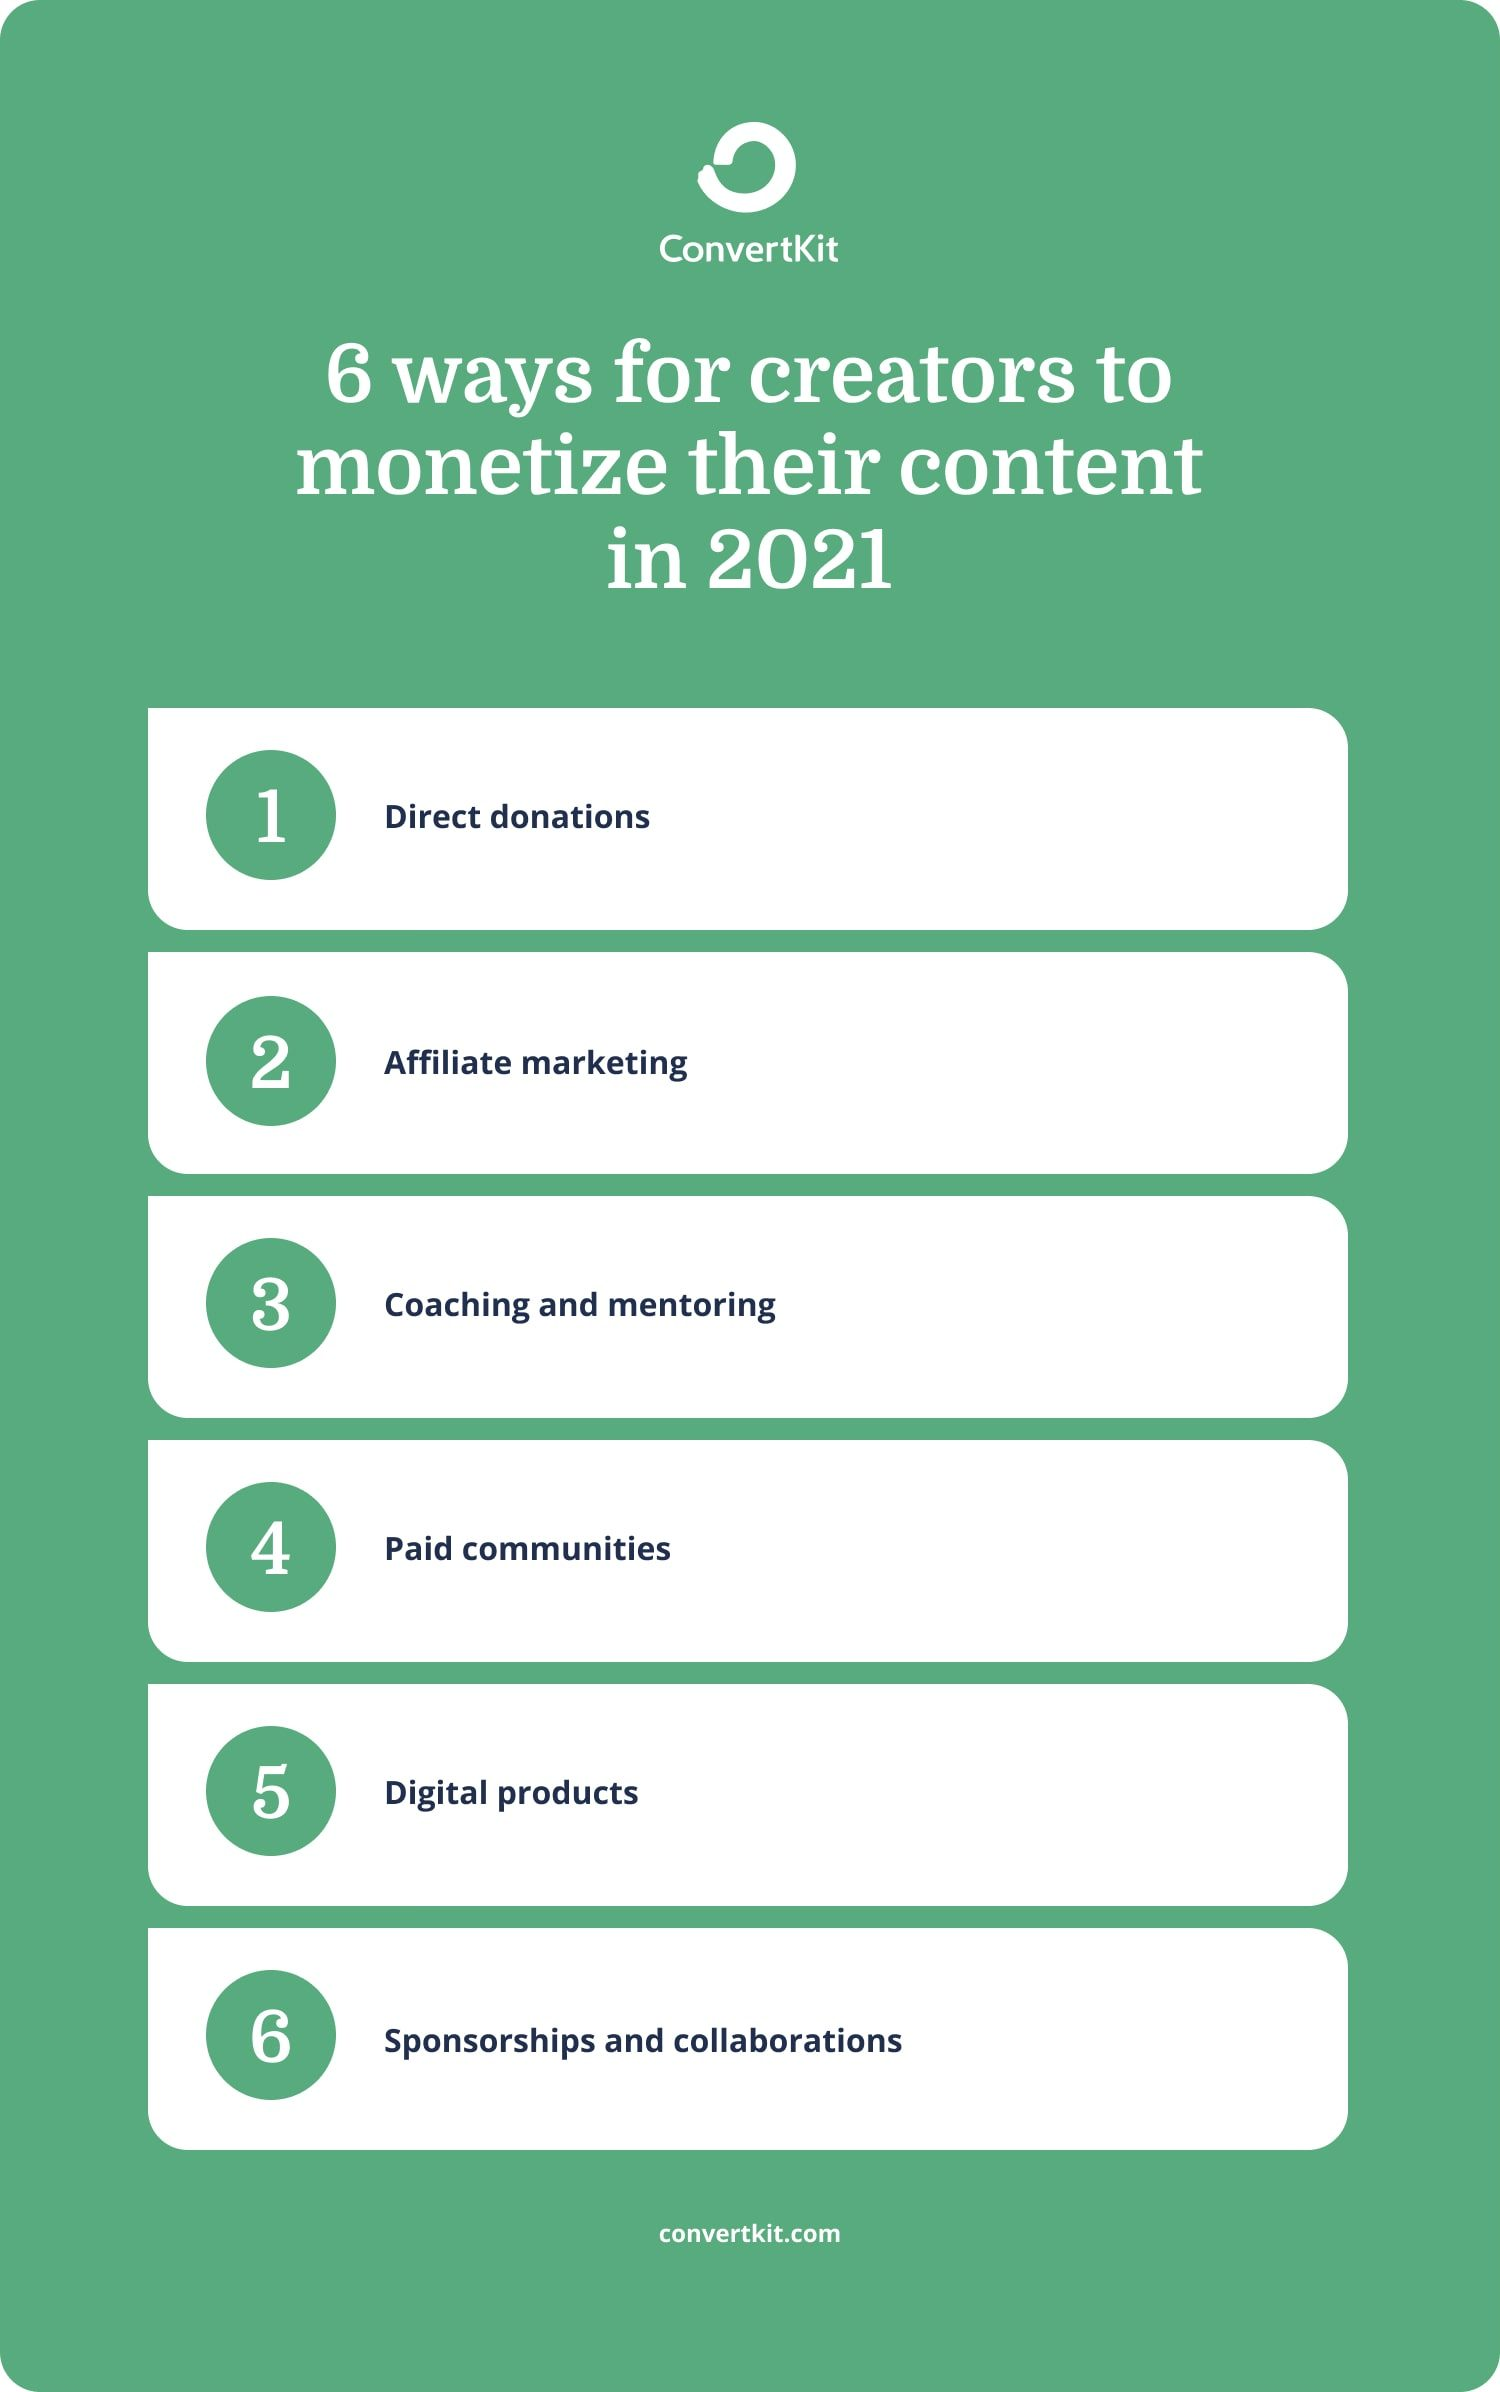 6 ways for creators to monetize their content in 2021 (and beyond)